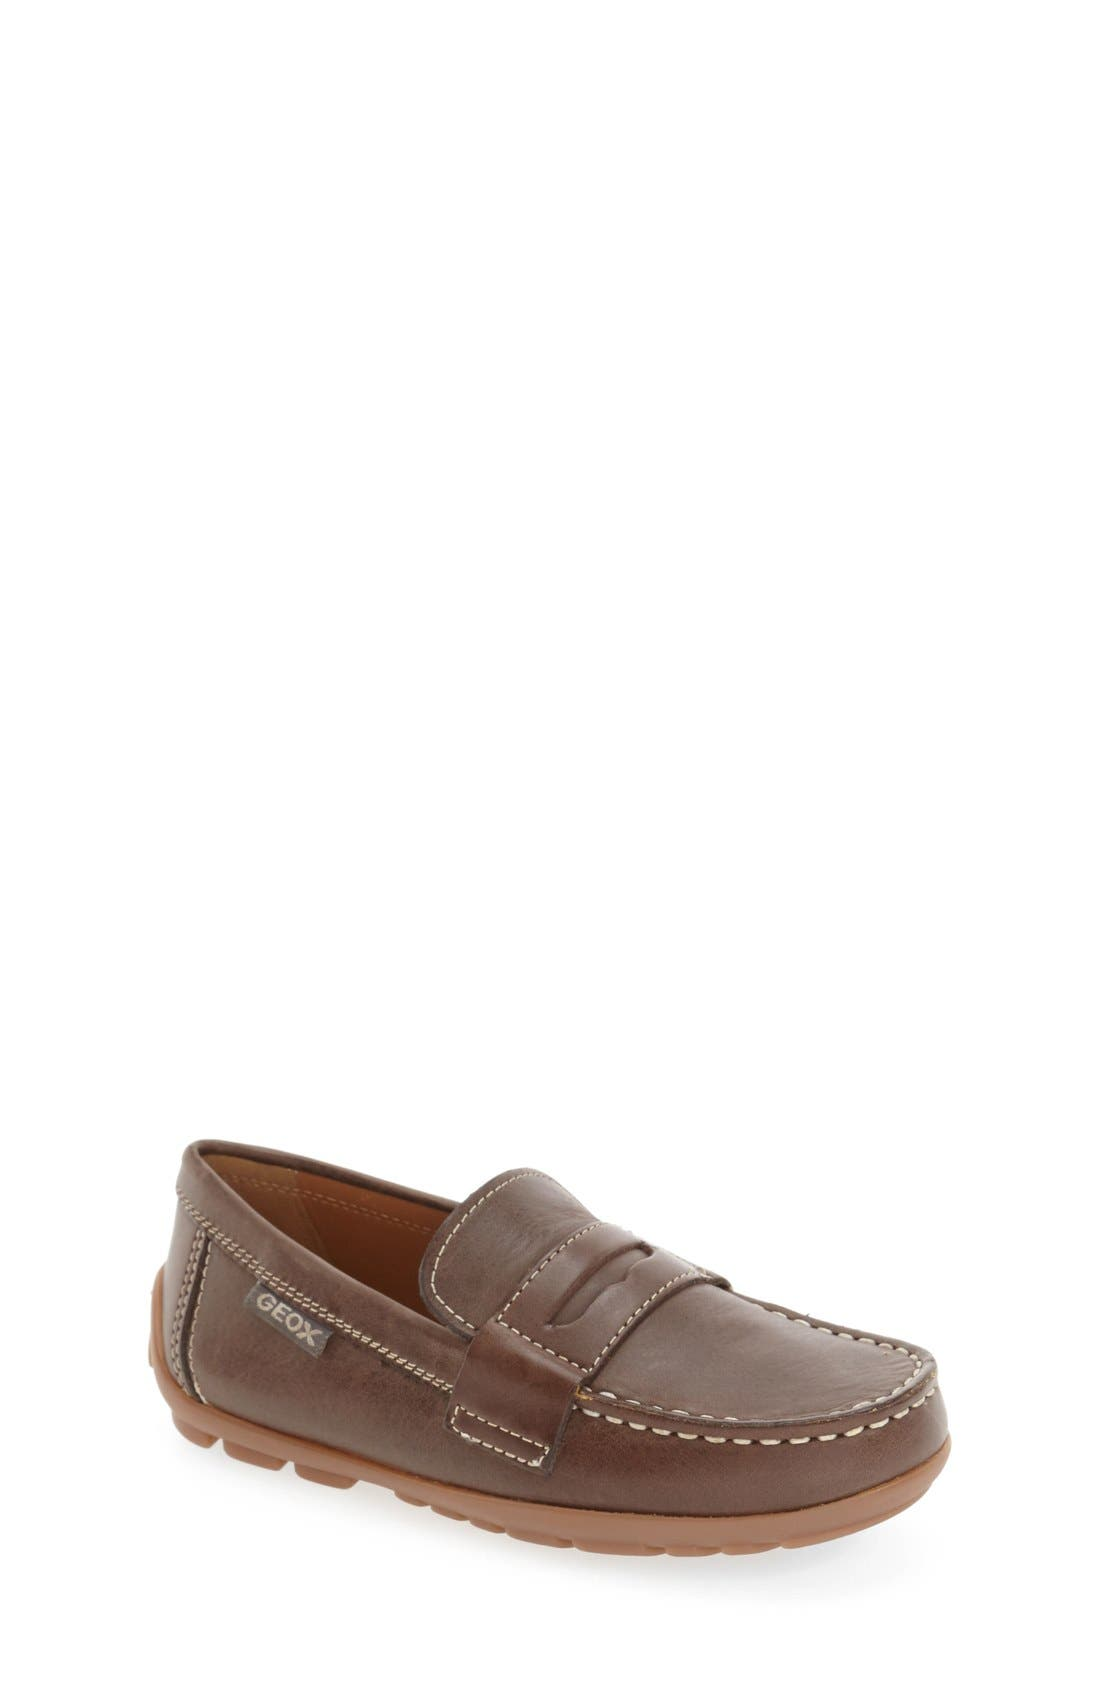 Main Image - Geox 'Fast' Penny Loafer (Toddler, Little Kid & Big Kid)